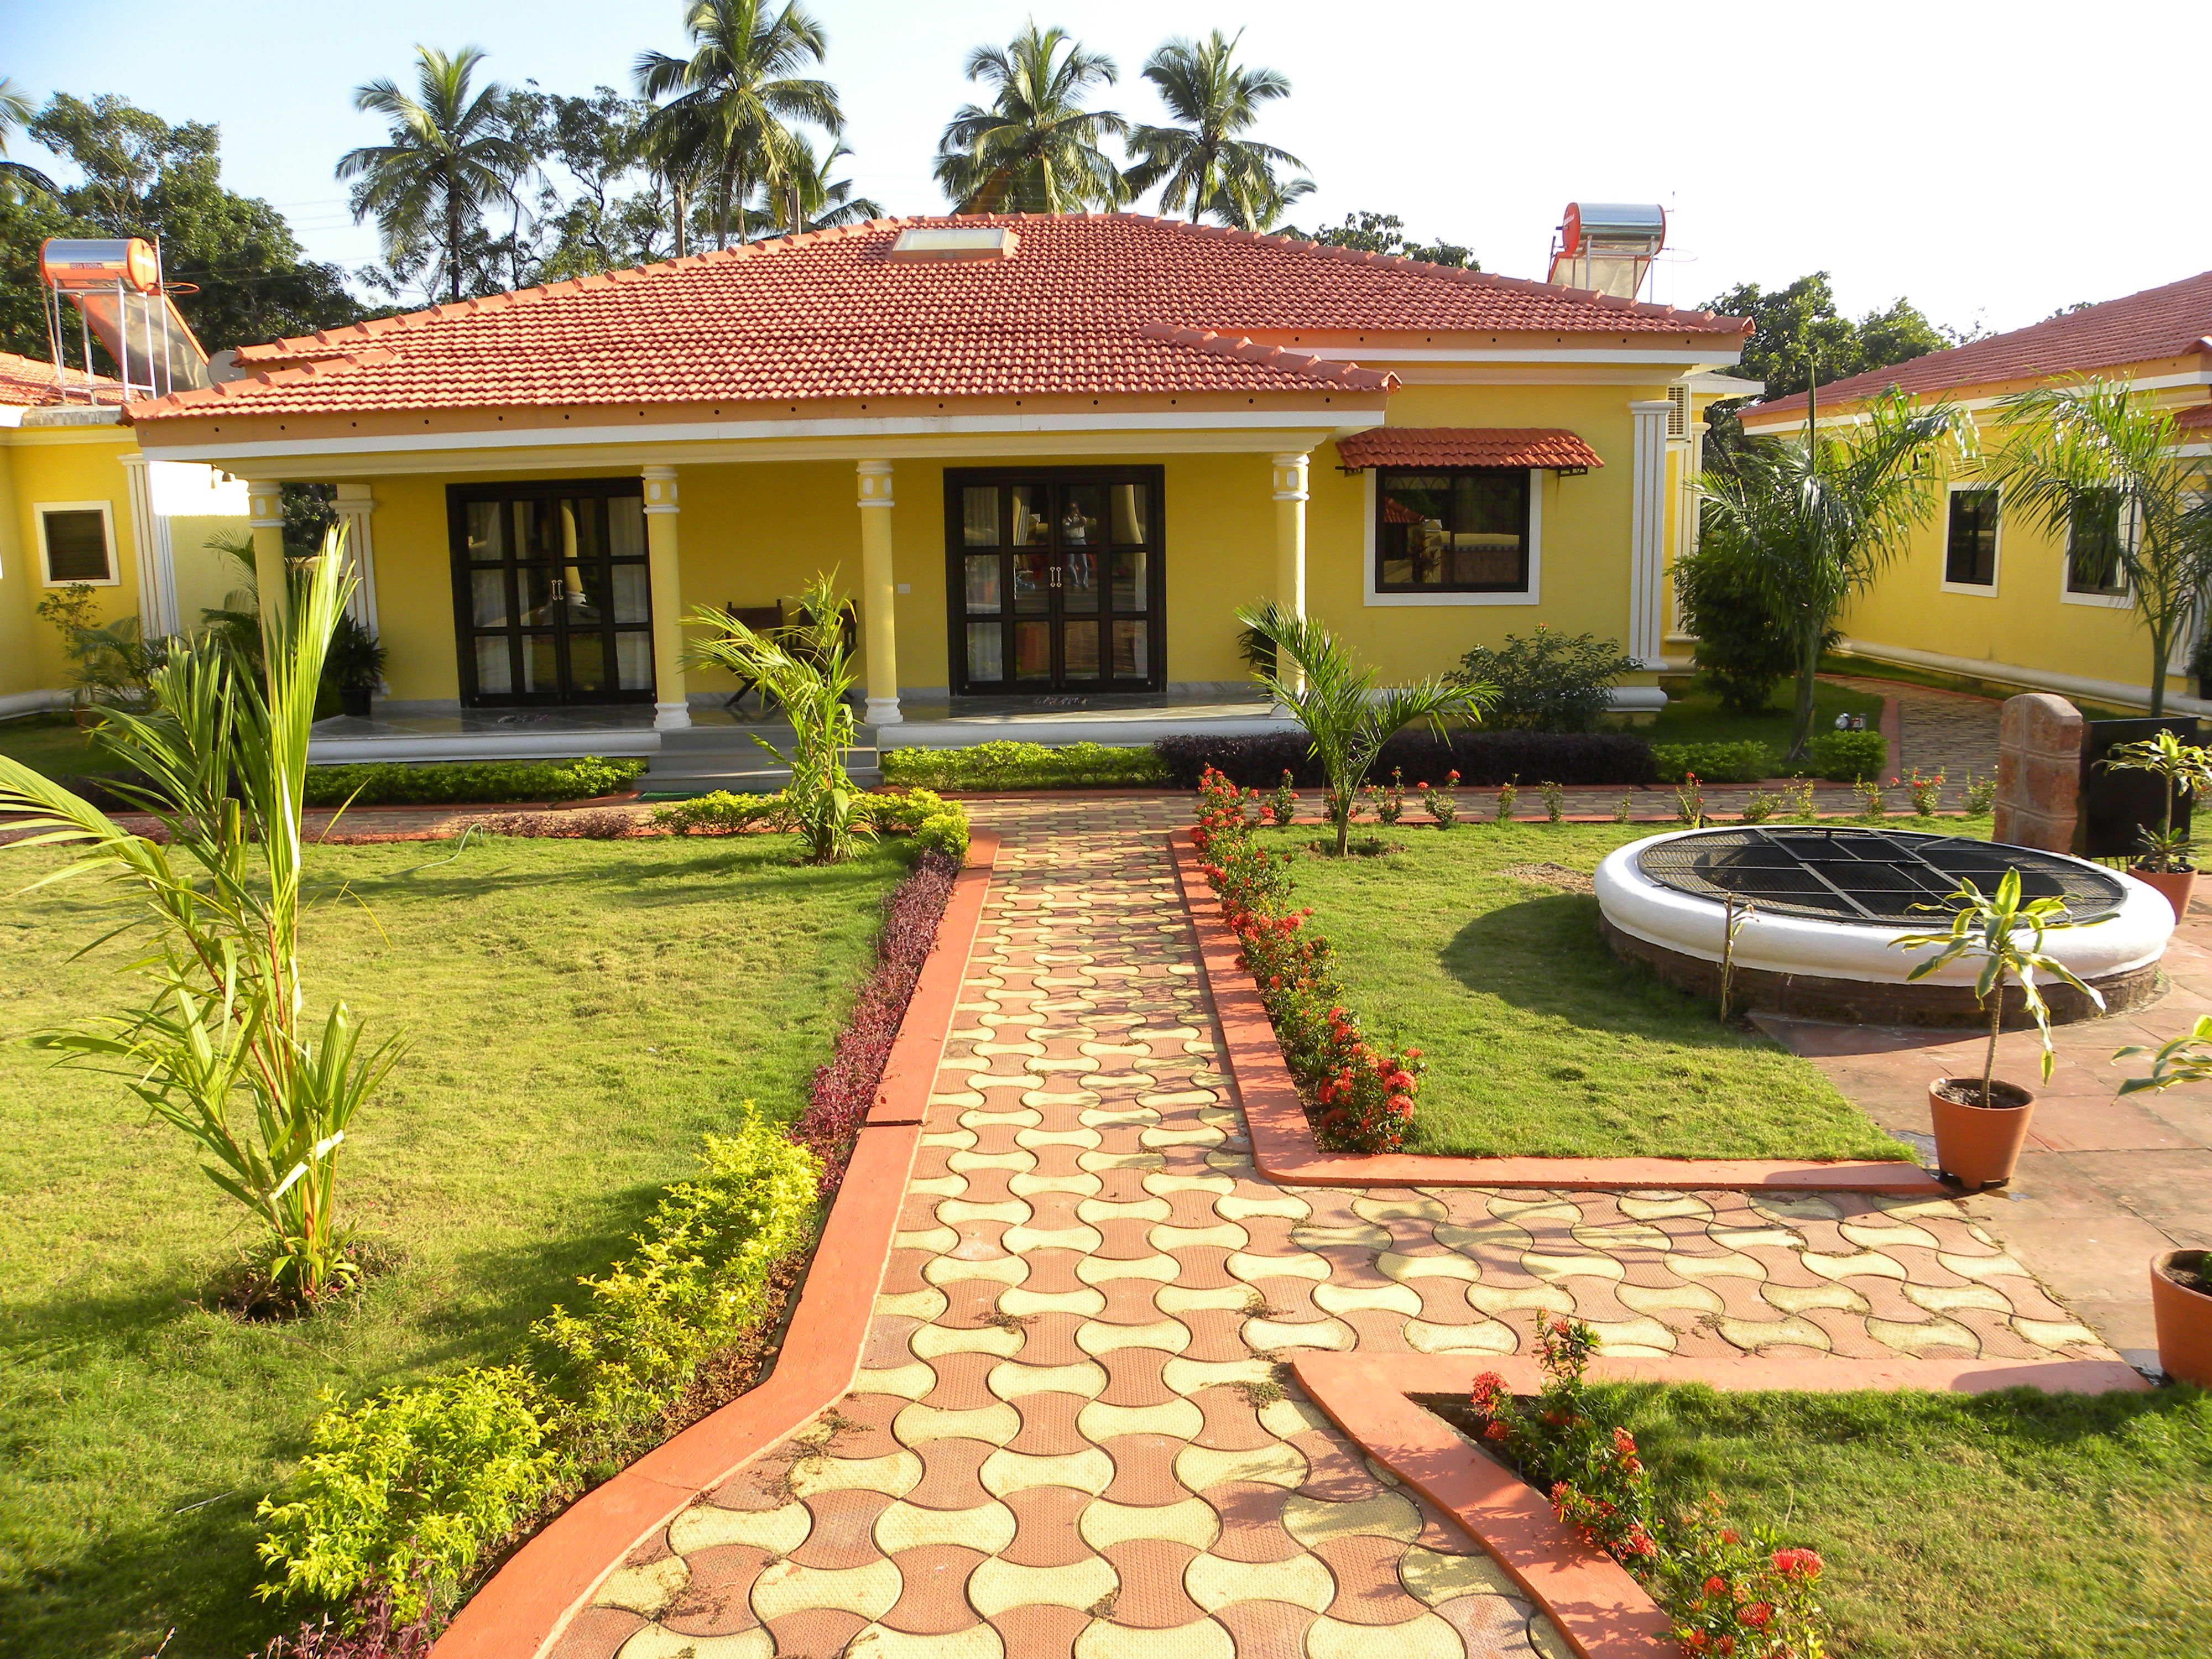 VACATION RENTAL: Goa Casitas Serviced Apartments and Villas at Goa for Vacation Rentals